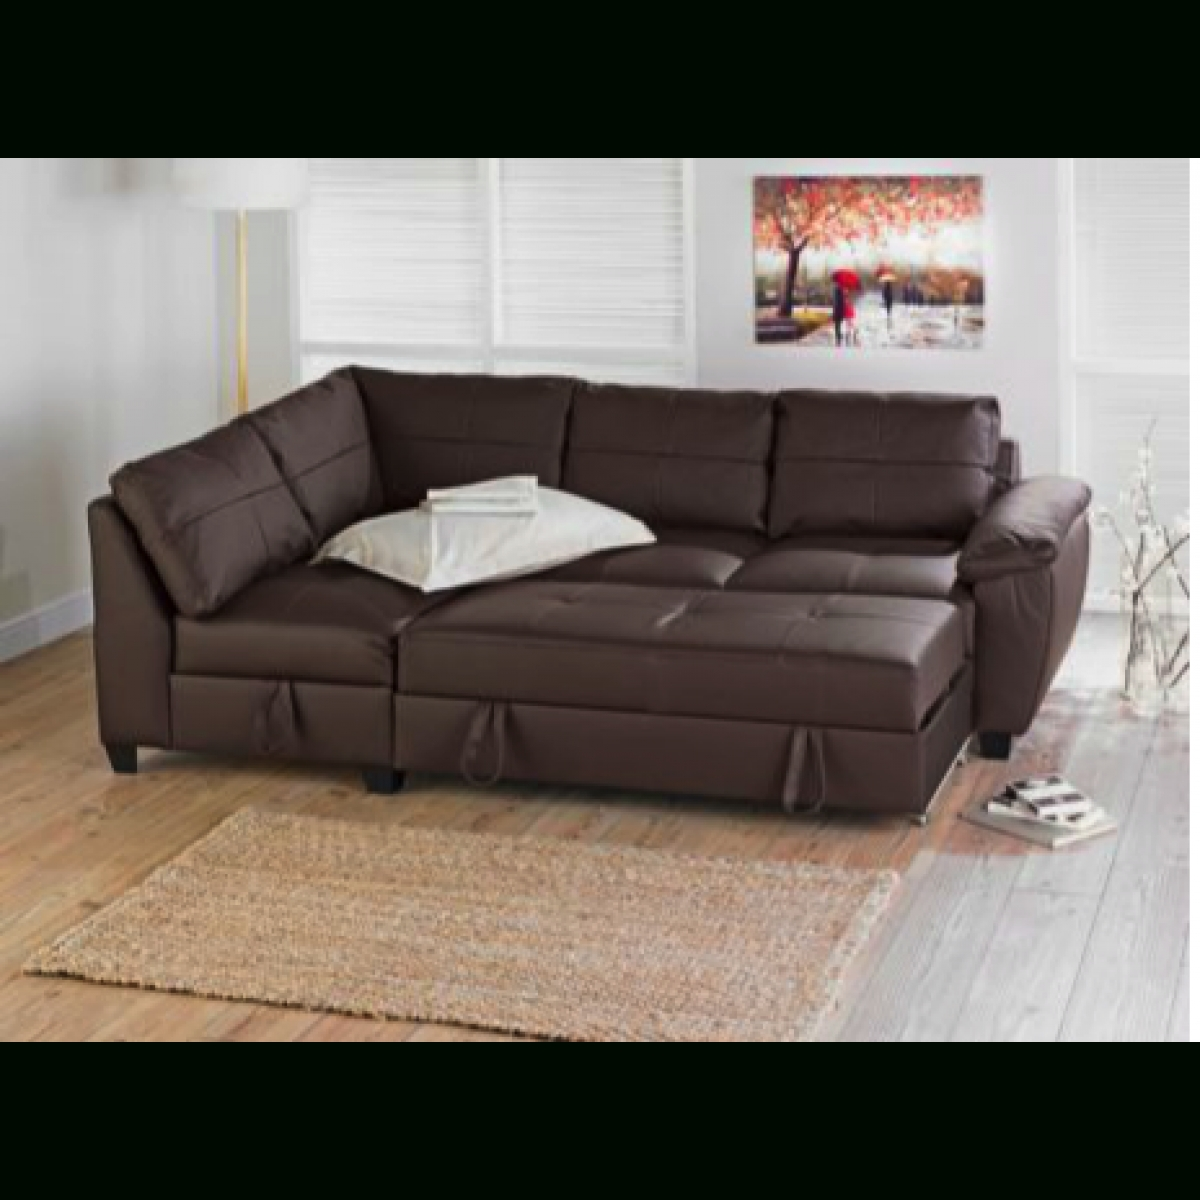 Fernando Leather Left Hand Sofa Bed Corner Group – Chocolate For Leather Corner Sofa Bed (Image 7 of 20)